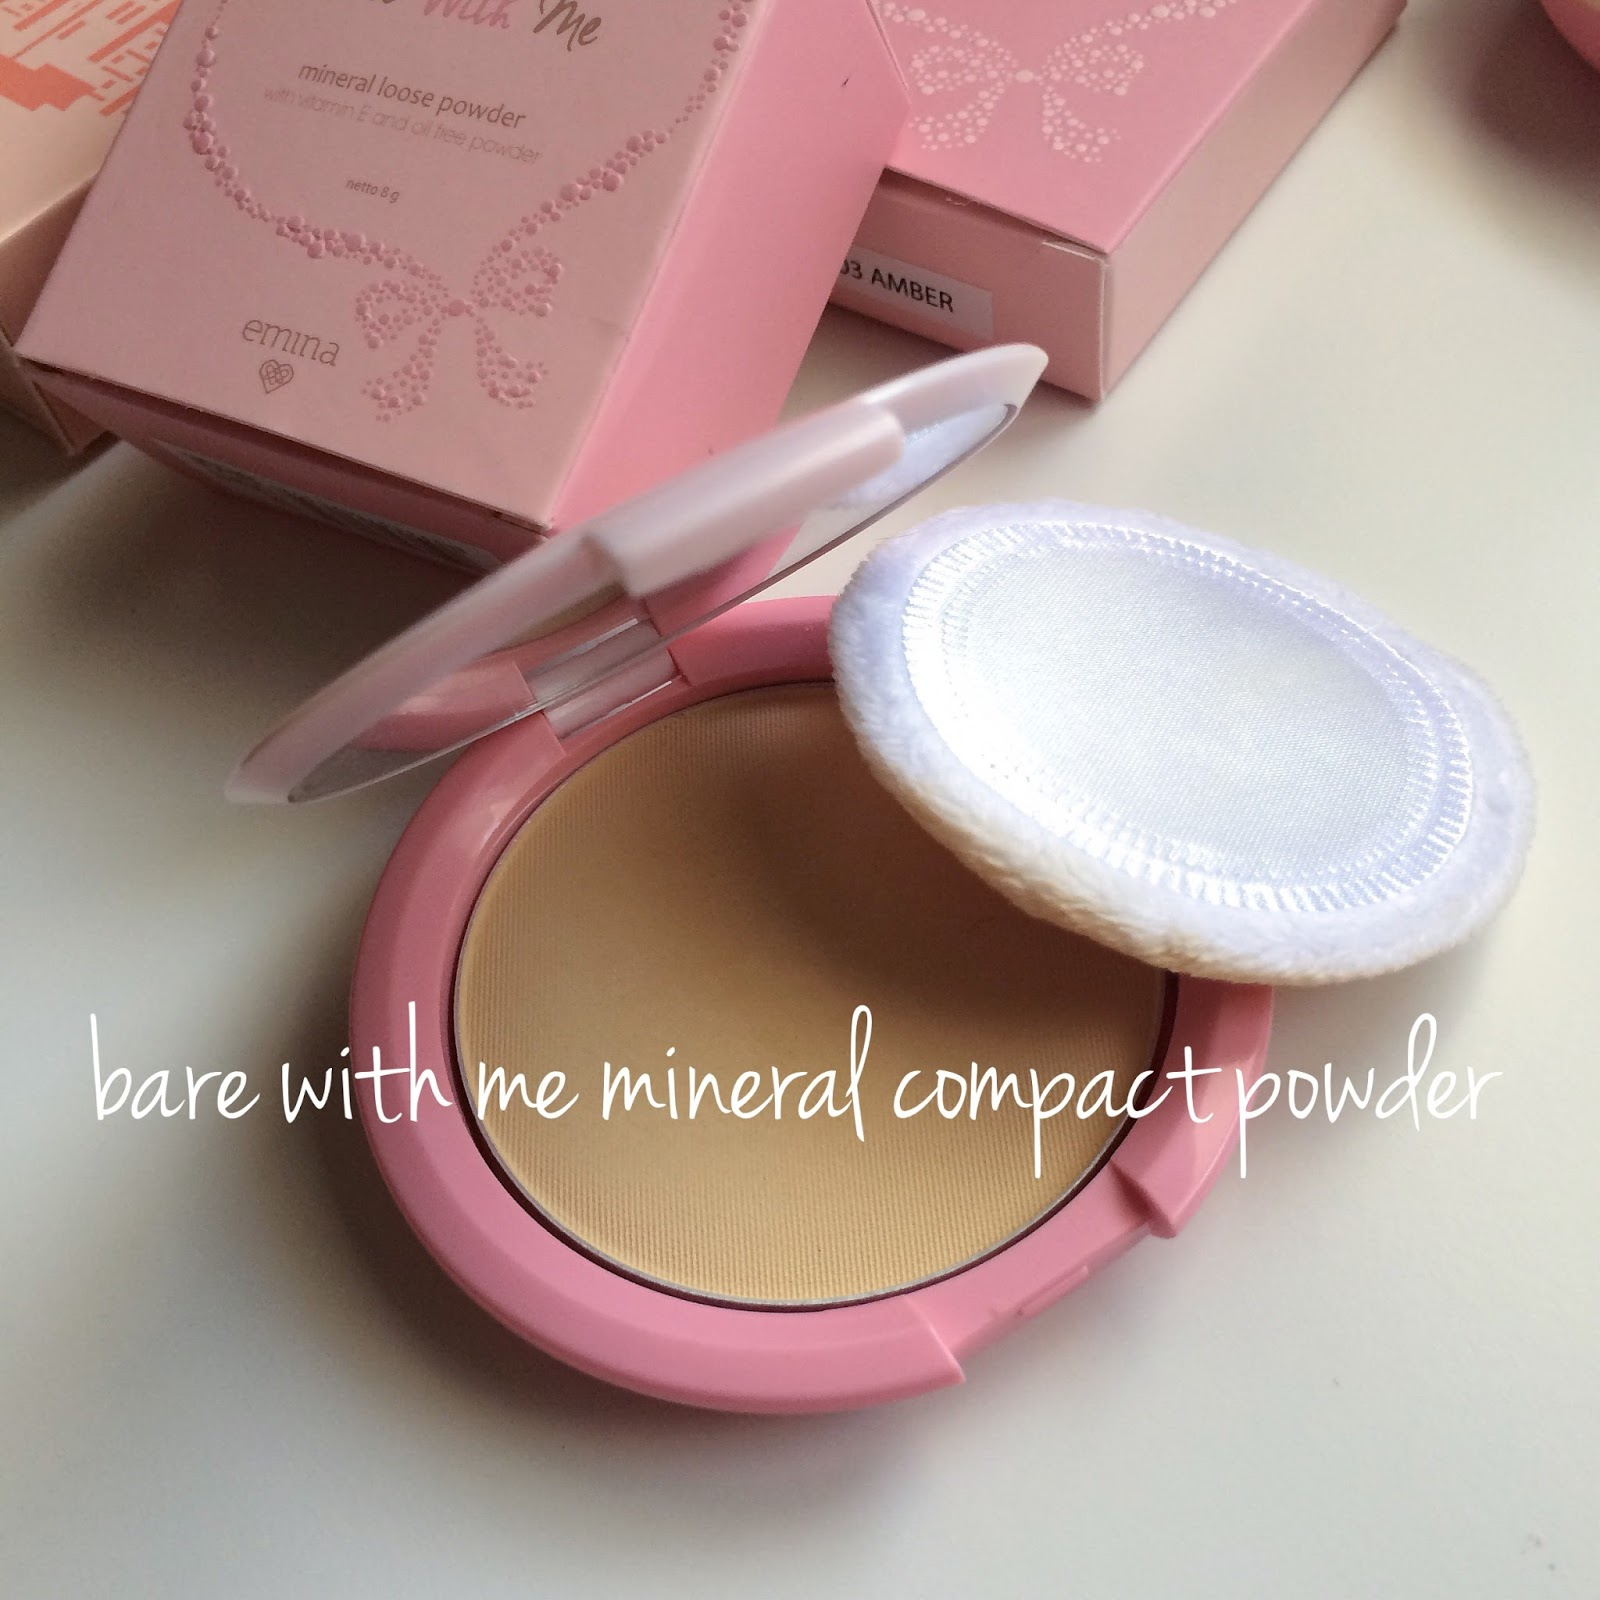 Emina Bare With Me Mineral Compact Powder / MKP0157 .